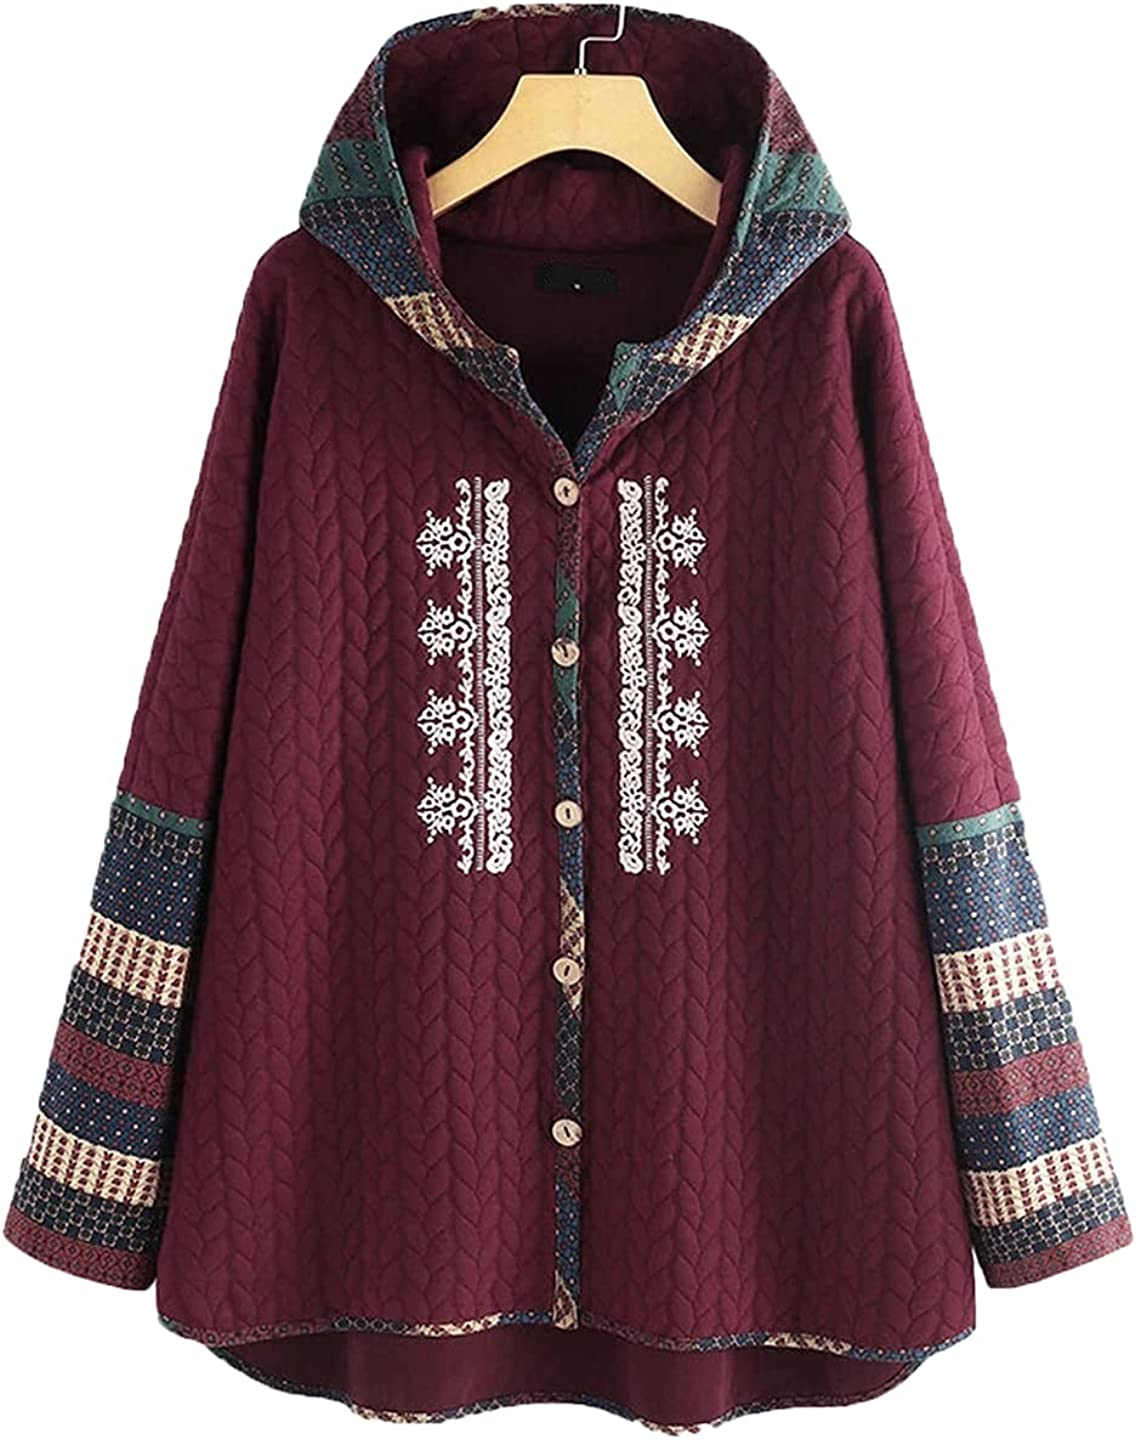 Women Colorful Print Faux Fur Jacket Lining Hooded Casual Pockets Coats